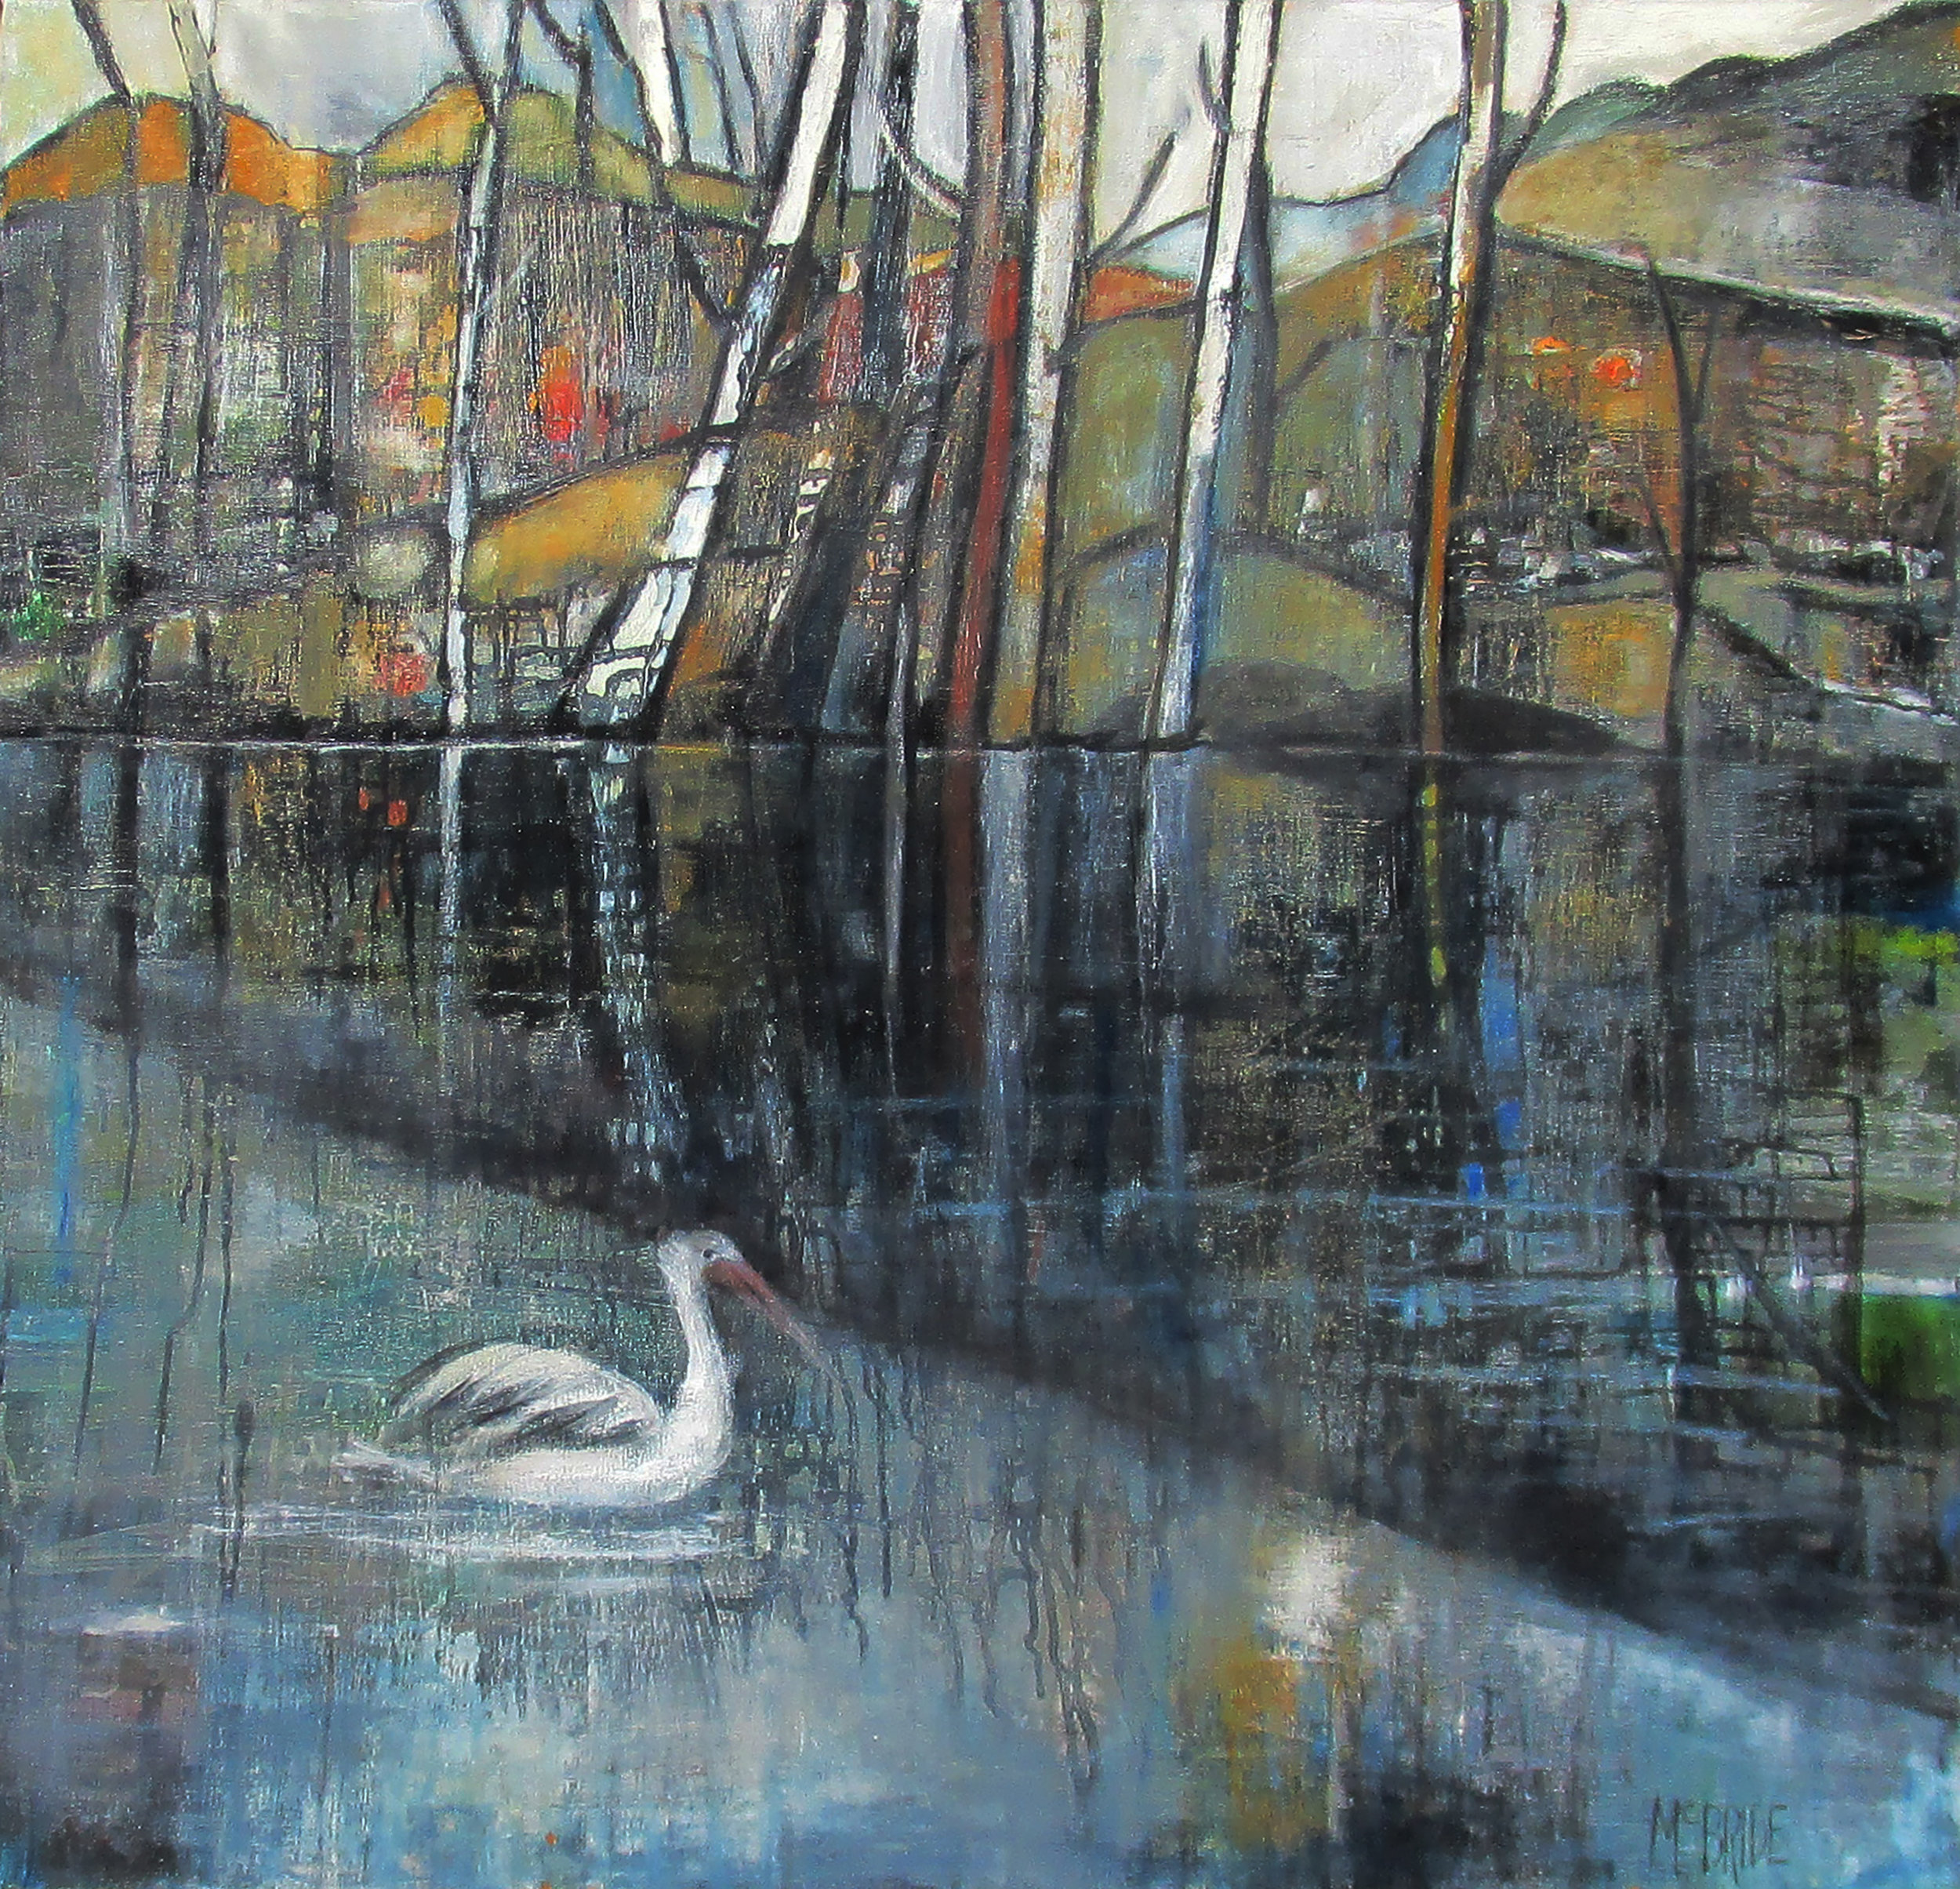 Janice McBride, By the Singing River